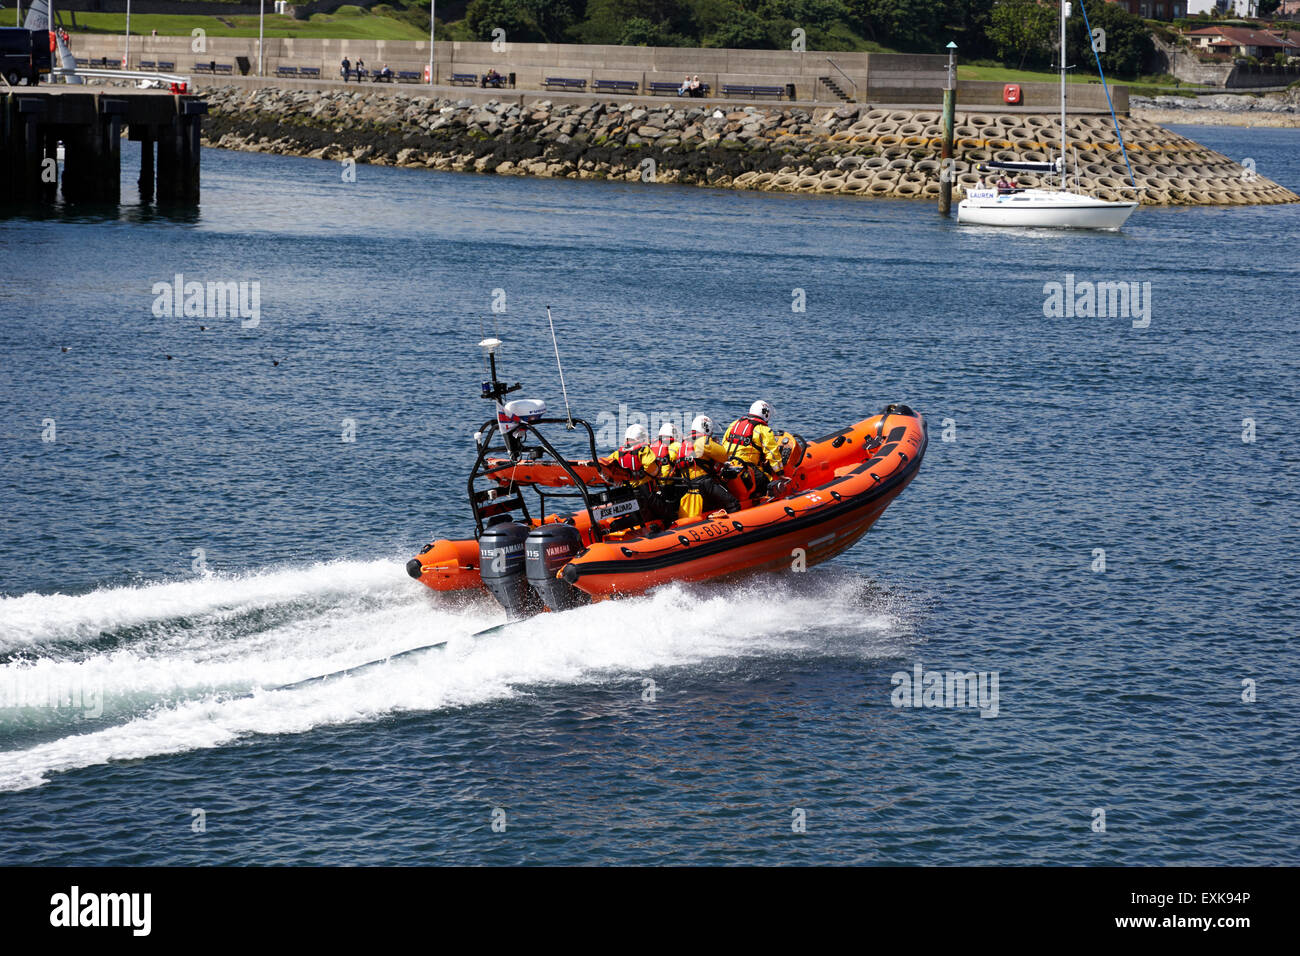 RNLI inshore lifeboat Jessie Hillyard responding to call Bangor harbour county down northern ireland uk Stock Photo